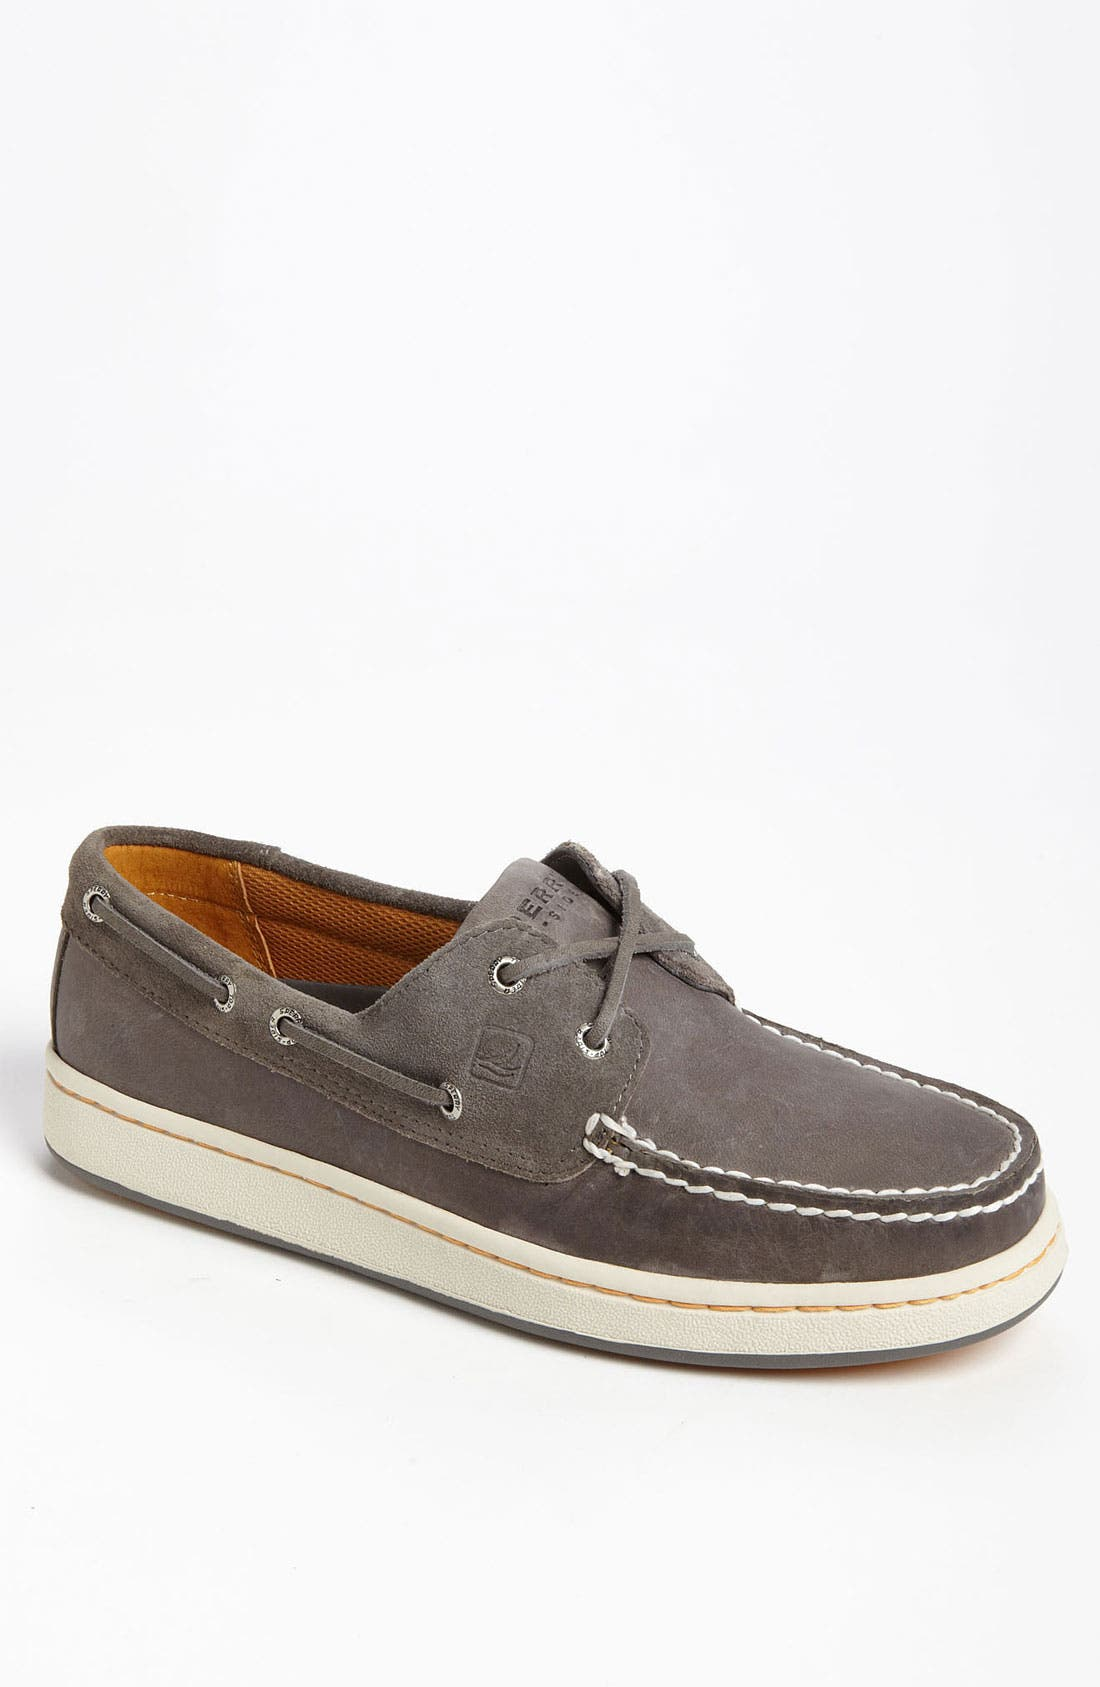 Alternate Image 1 Selected - Sperry Top-Sider® 'Sperry Cup' Slip-On